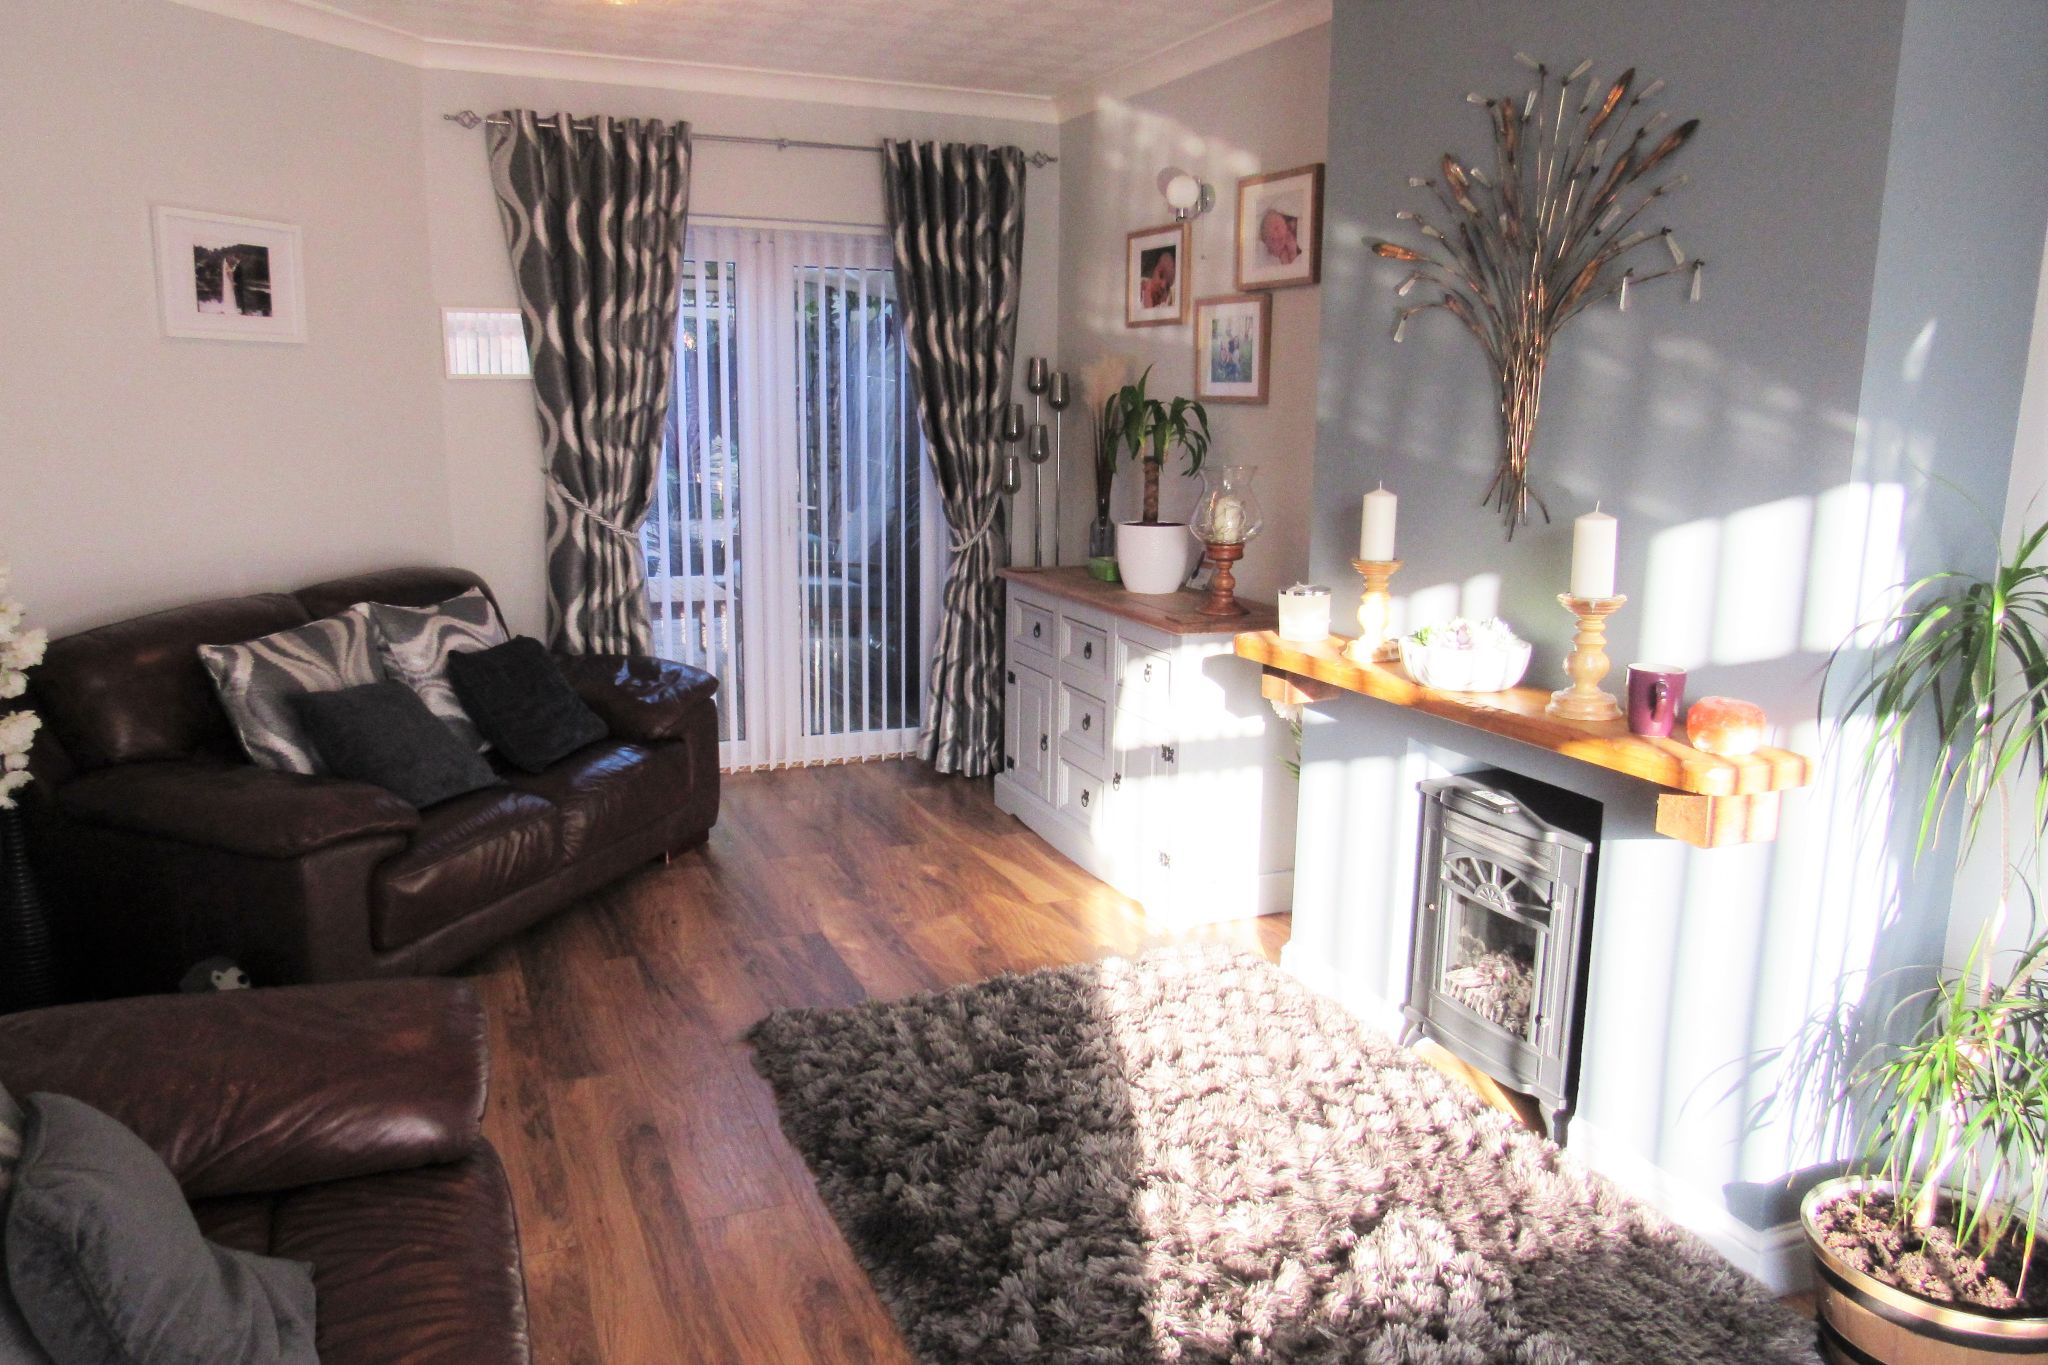 3 bedroom end terraced house SSTC in Manchester - Photograph 3.